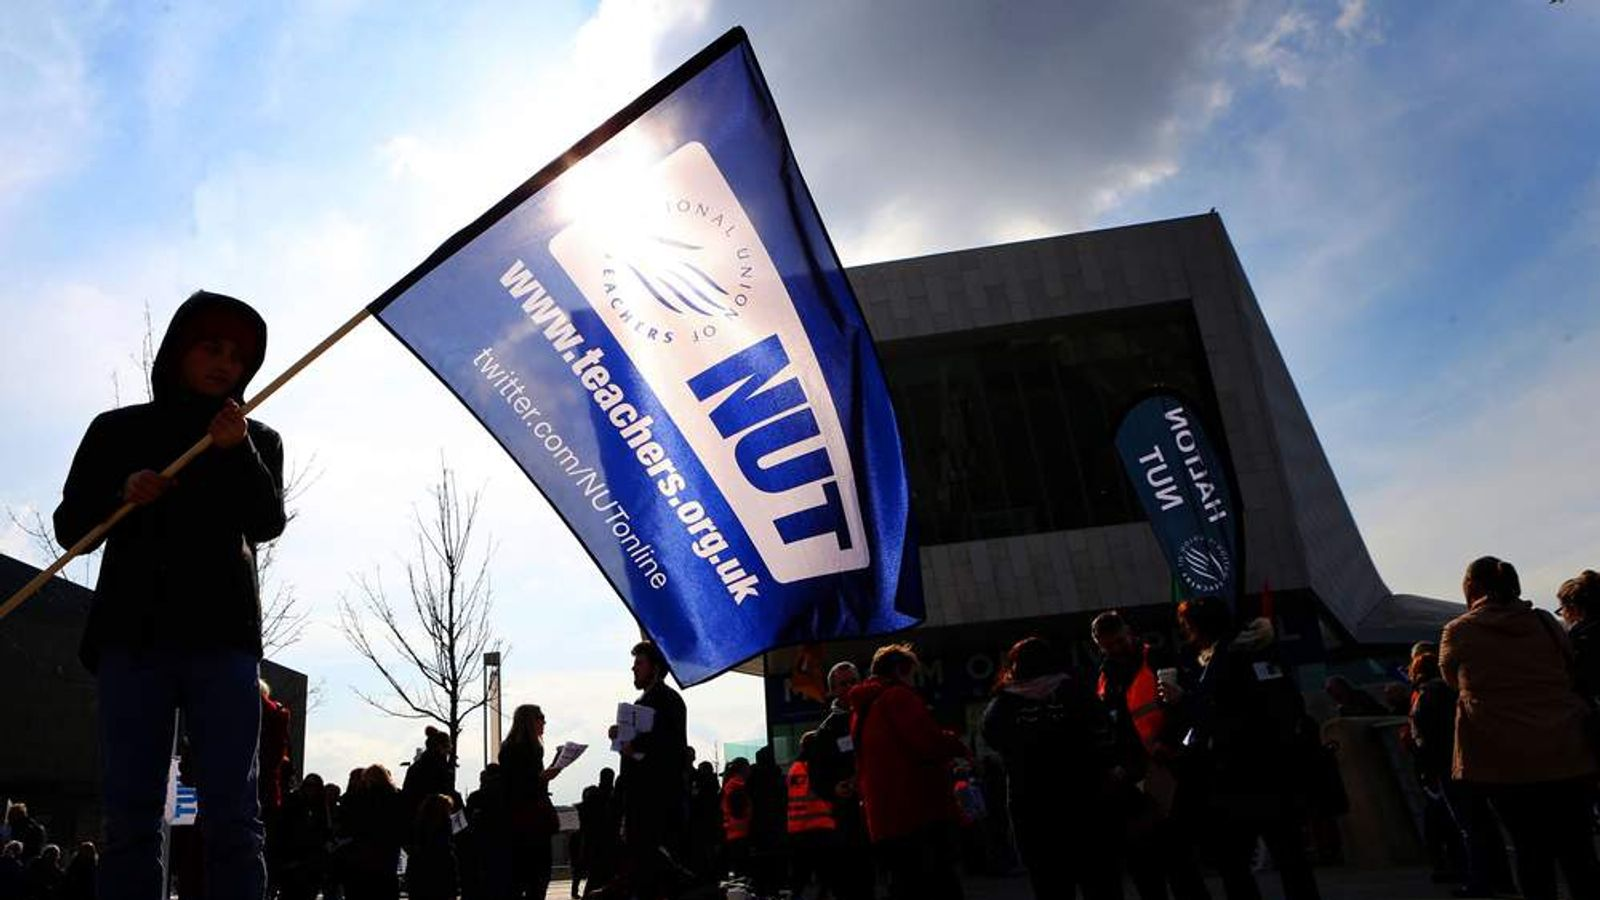 A young boy in Liverpool's Mann Island holds aloft a flag in support for the Nation Union of Teachers (NUT) during a one-day walkout